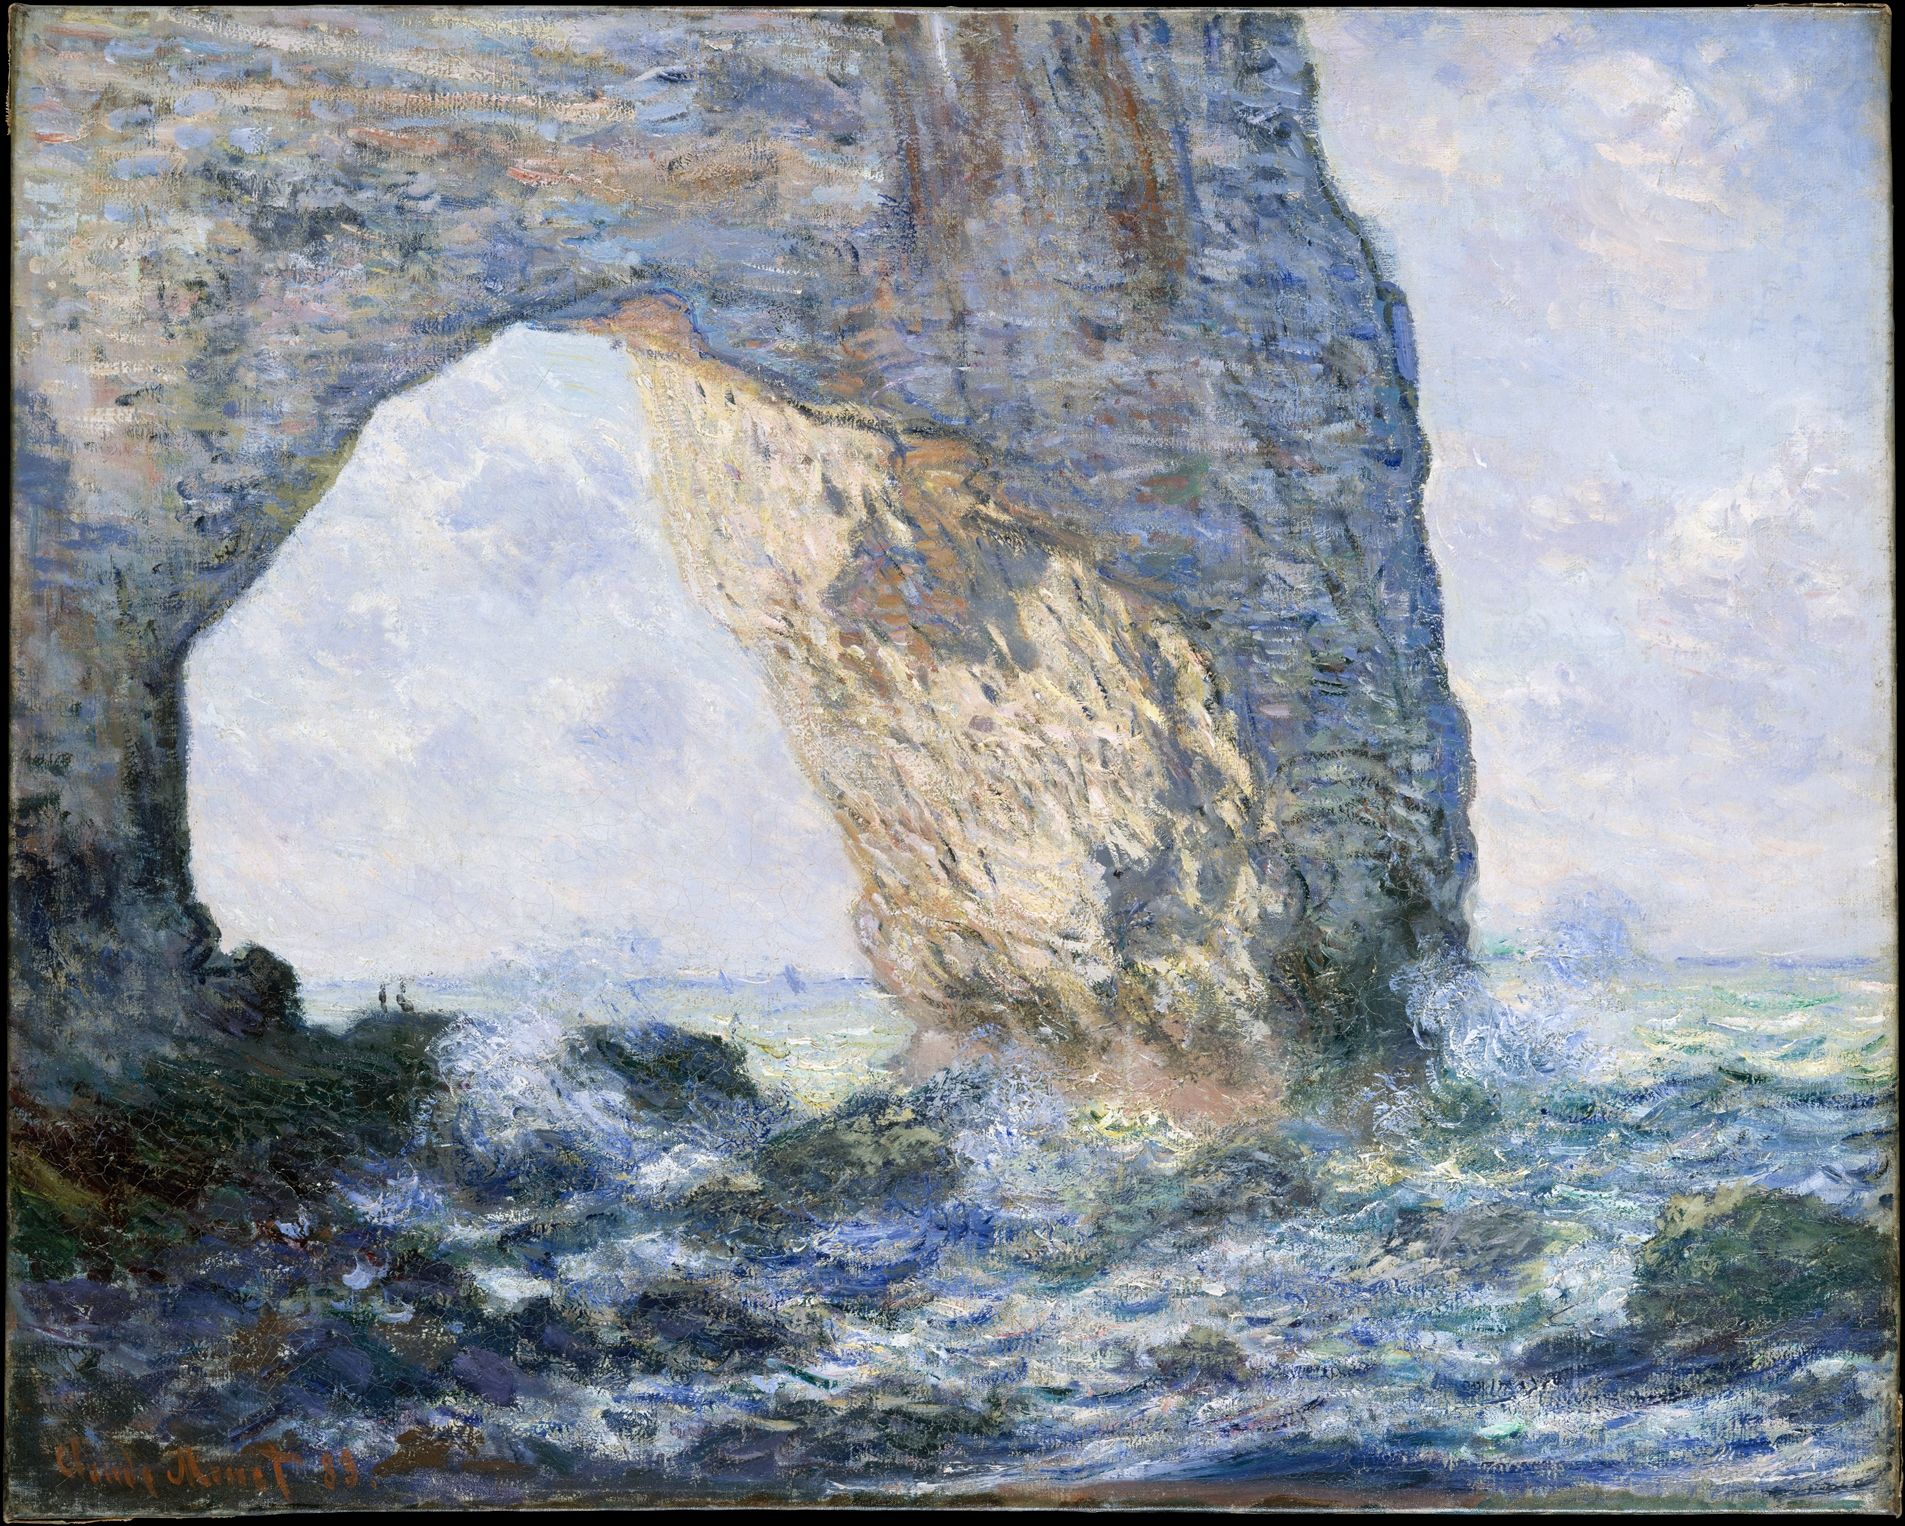 Claude Monet; The Manneporte (Etretat); 1883